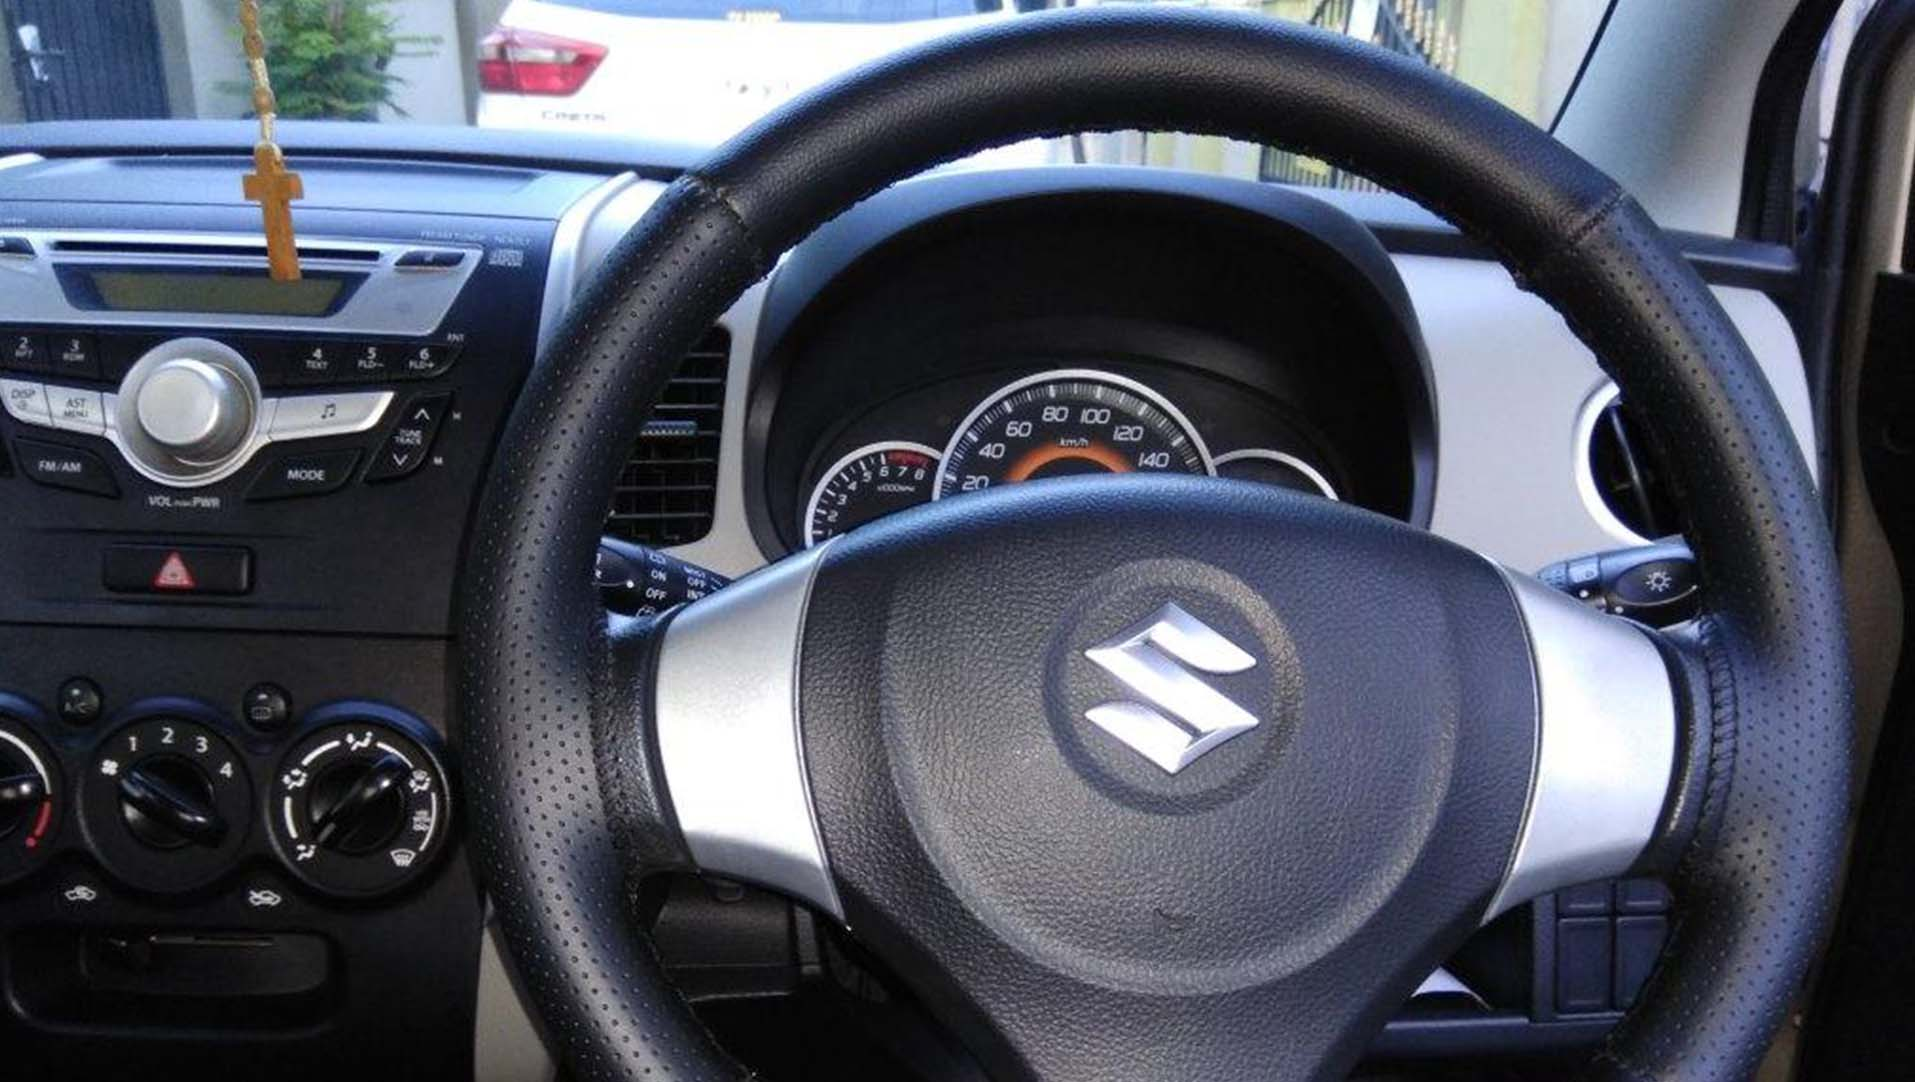 https://iciciauto.com/storage/upload/model_images/Maruti Wagon R - Steering.jpg